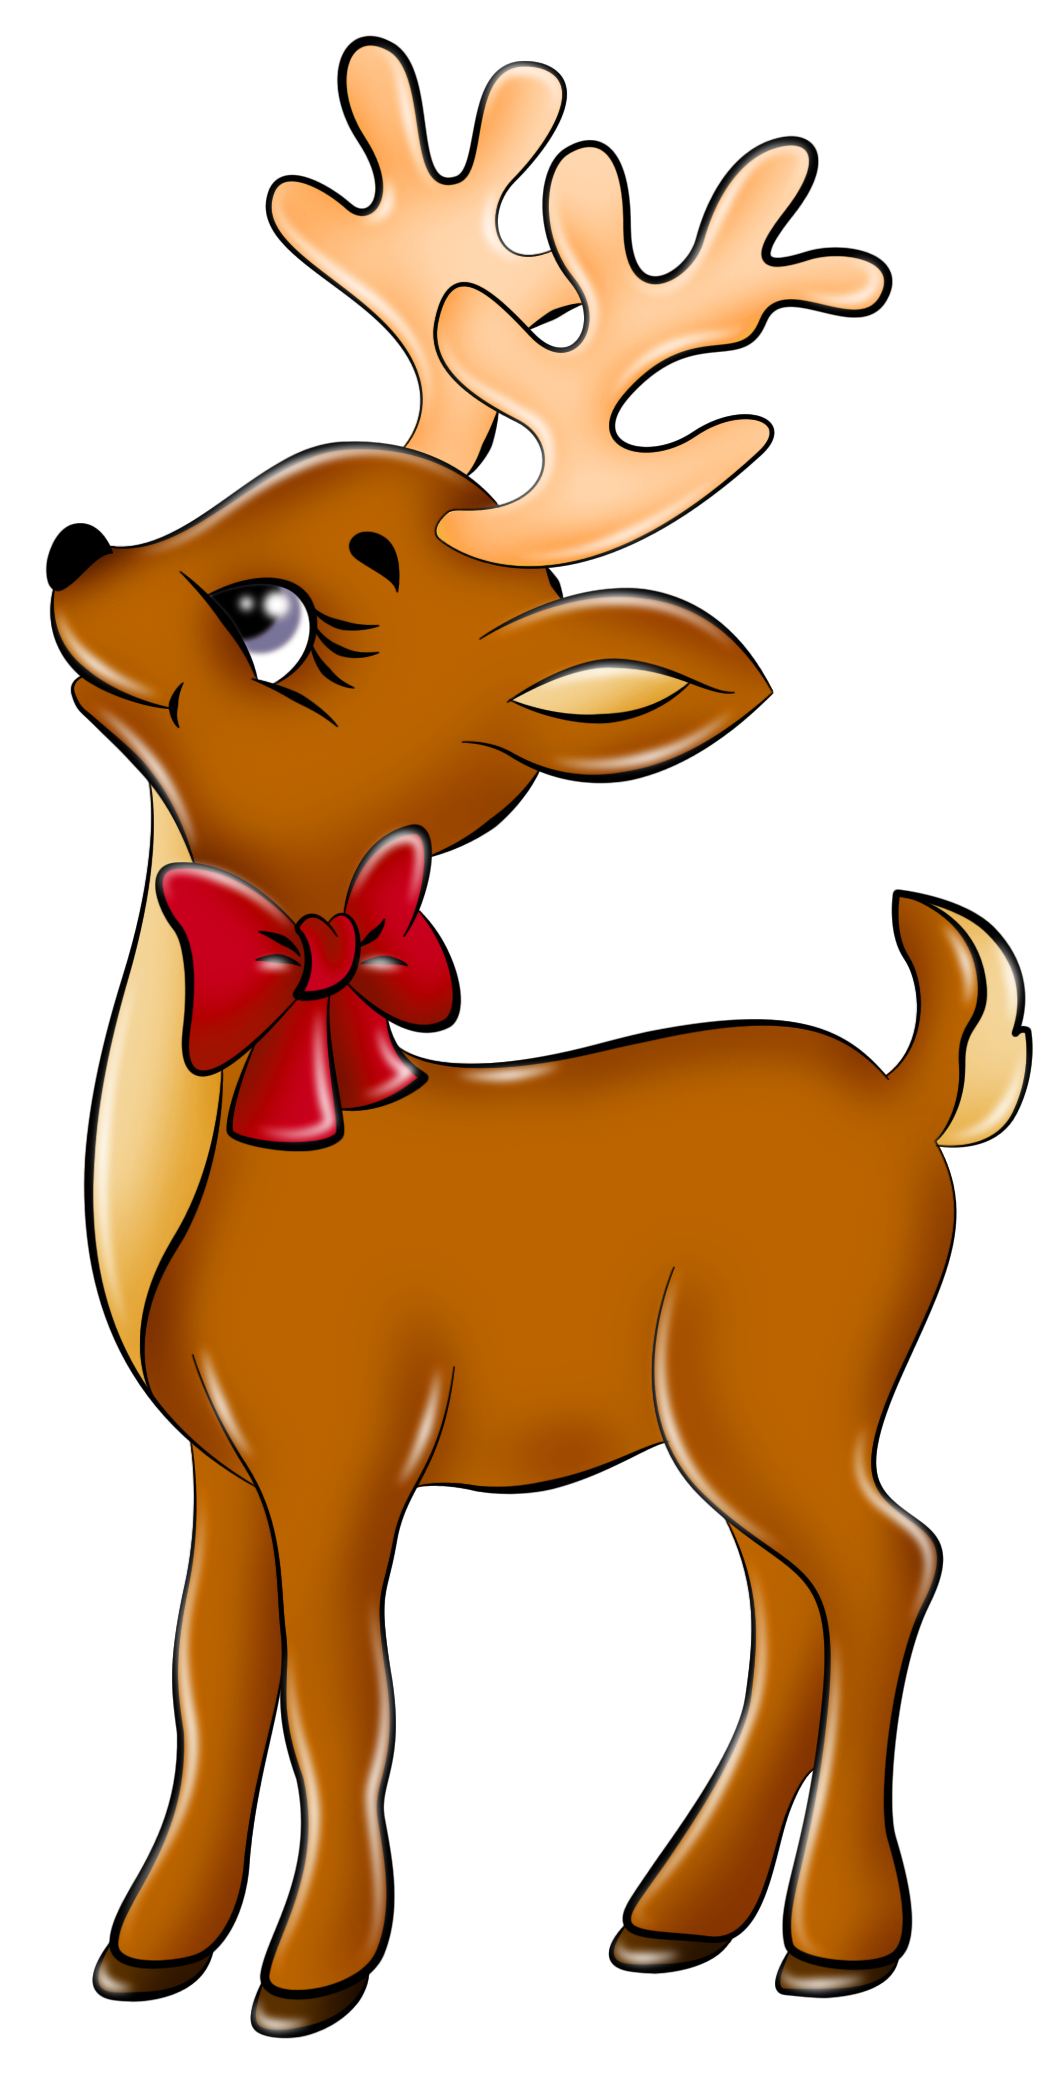 cute reindeer clip art clipart free clipart holiday christmas rh pinterest com cute santa and reindeer clipart cute santa and reindeer clipart